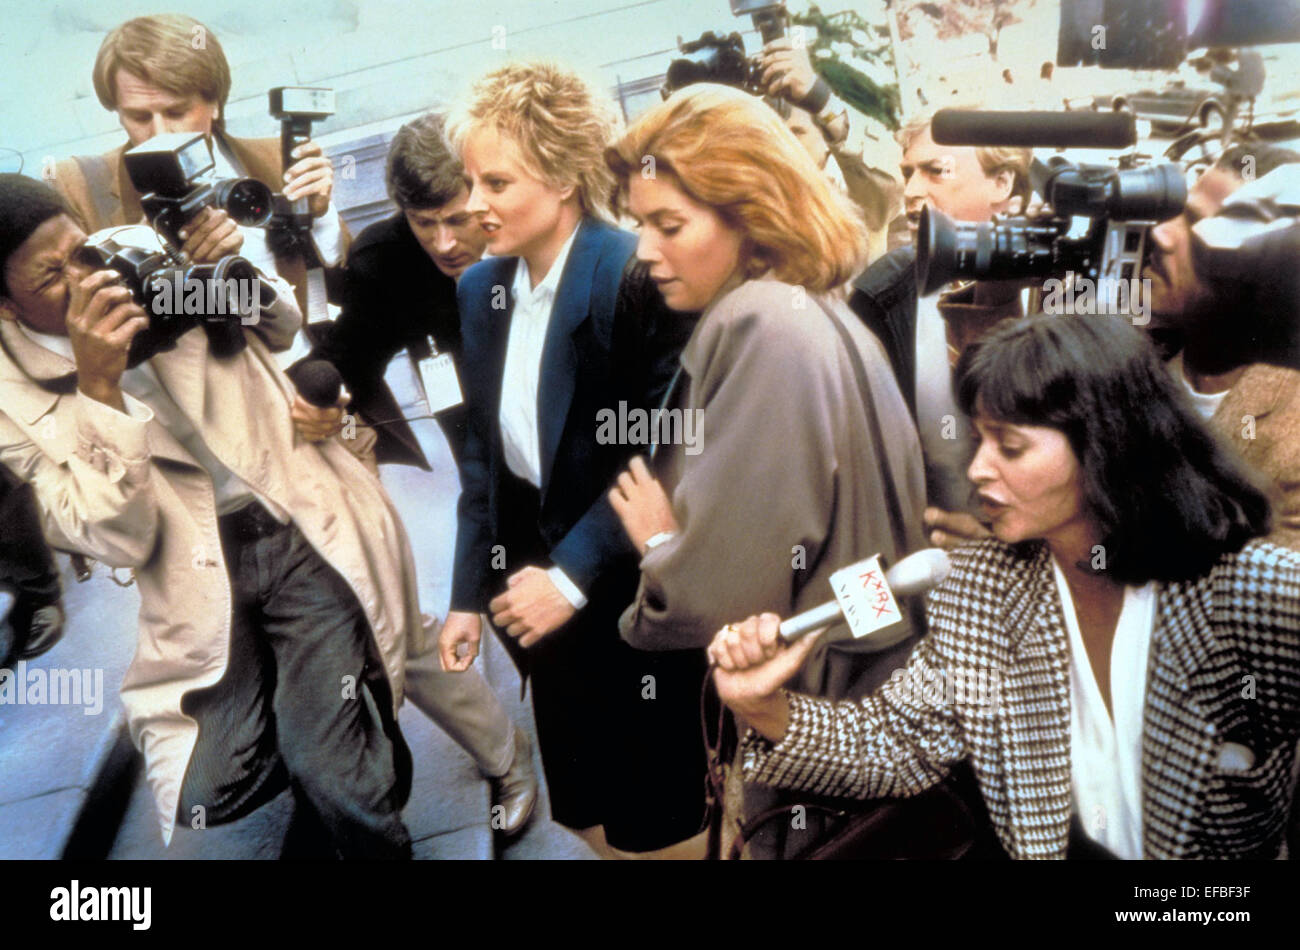 jodie foster kelly mcgillis the accused stock photo jodie foster kelly mcgillis the accused 1988